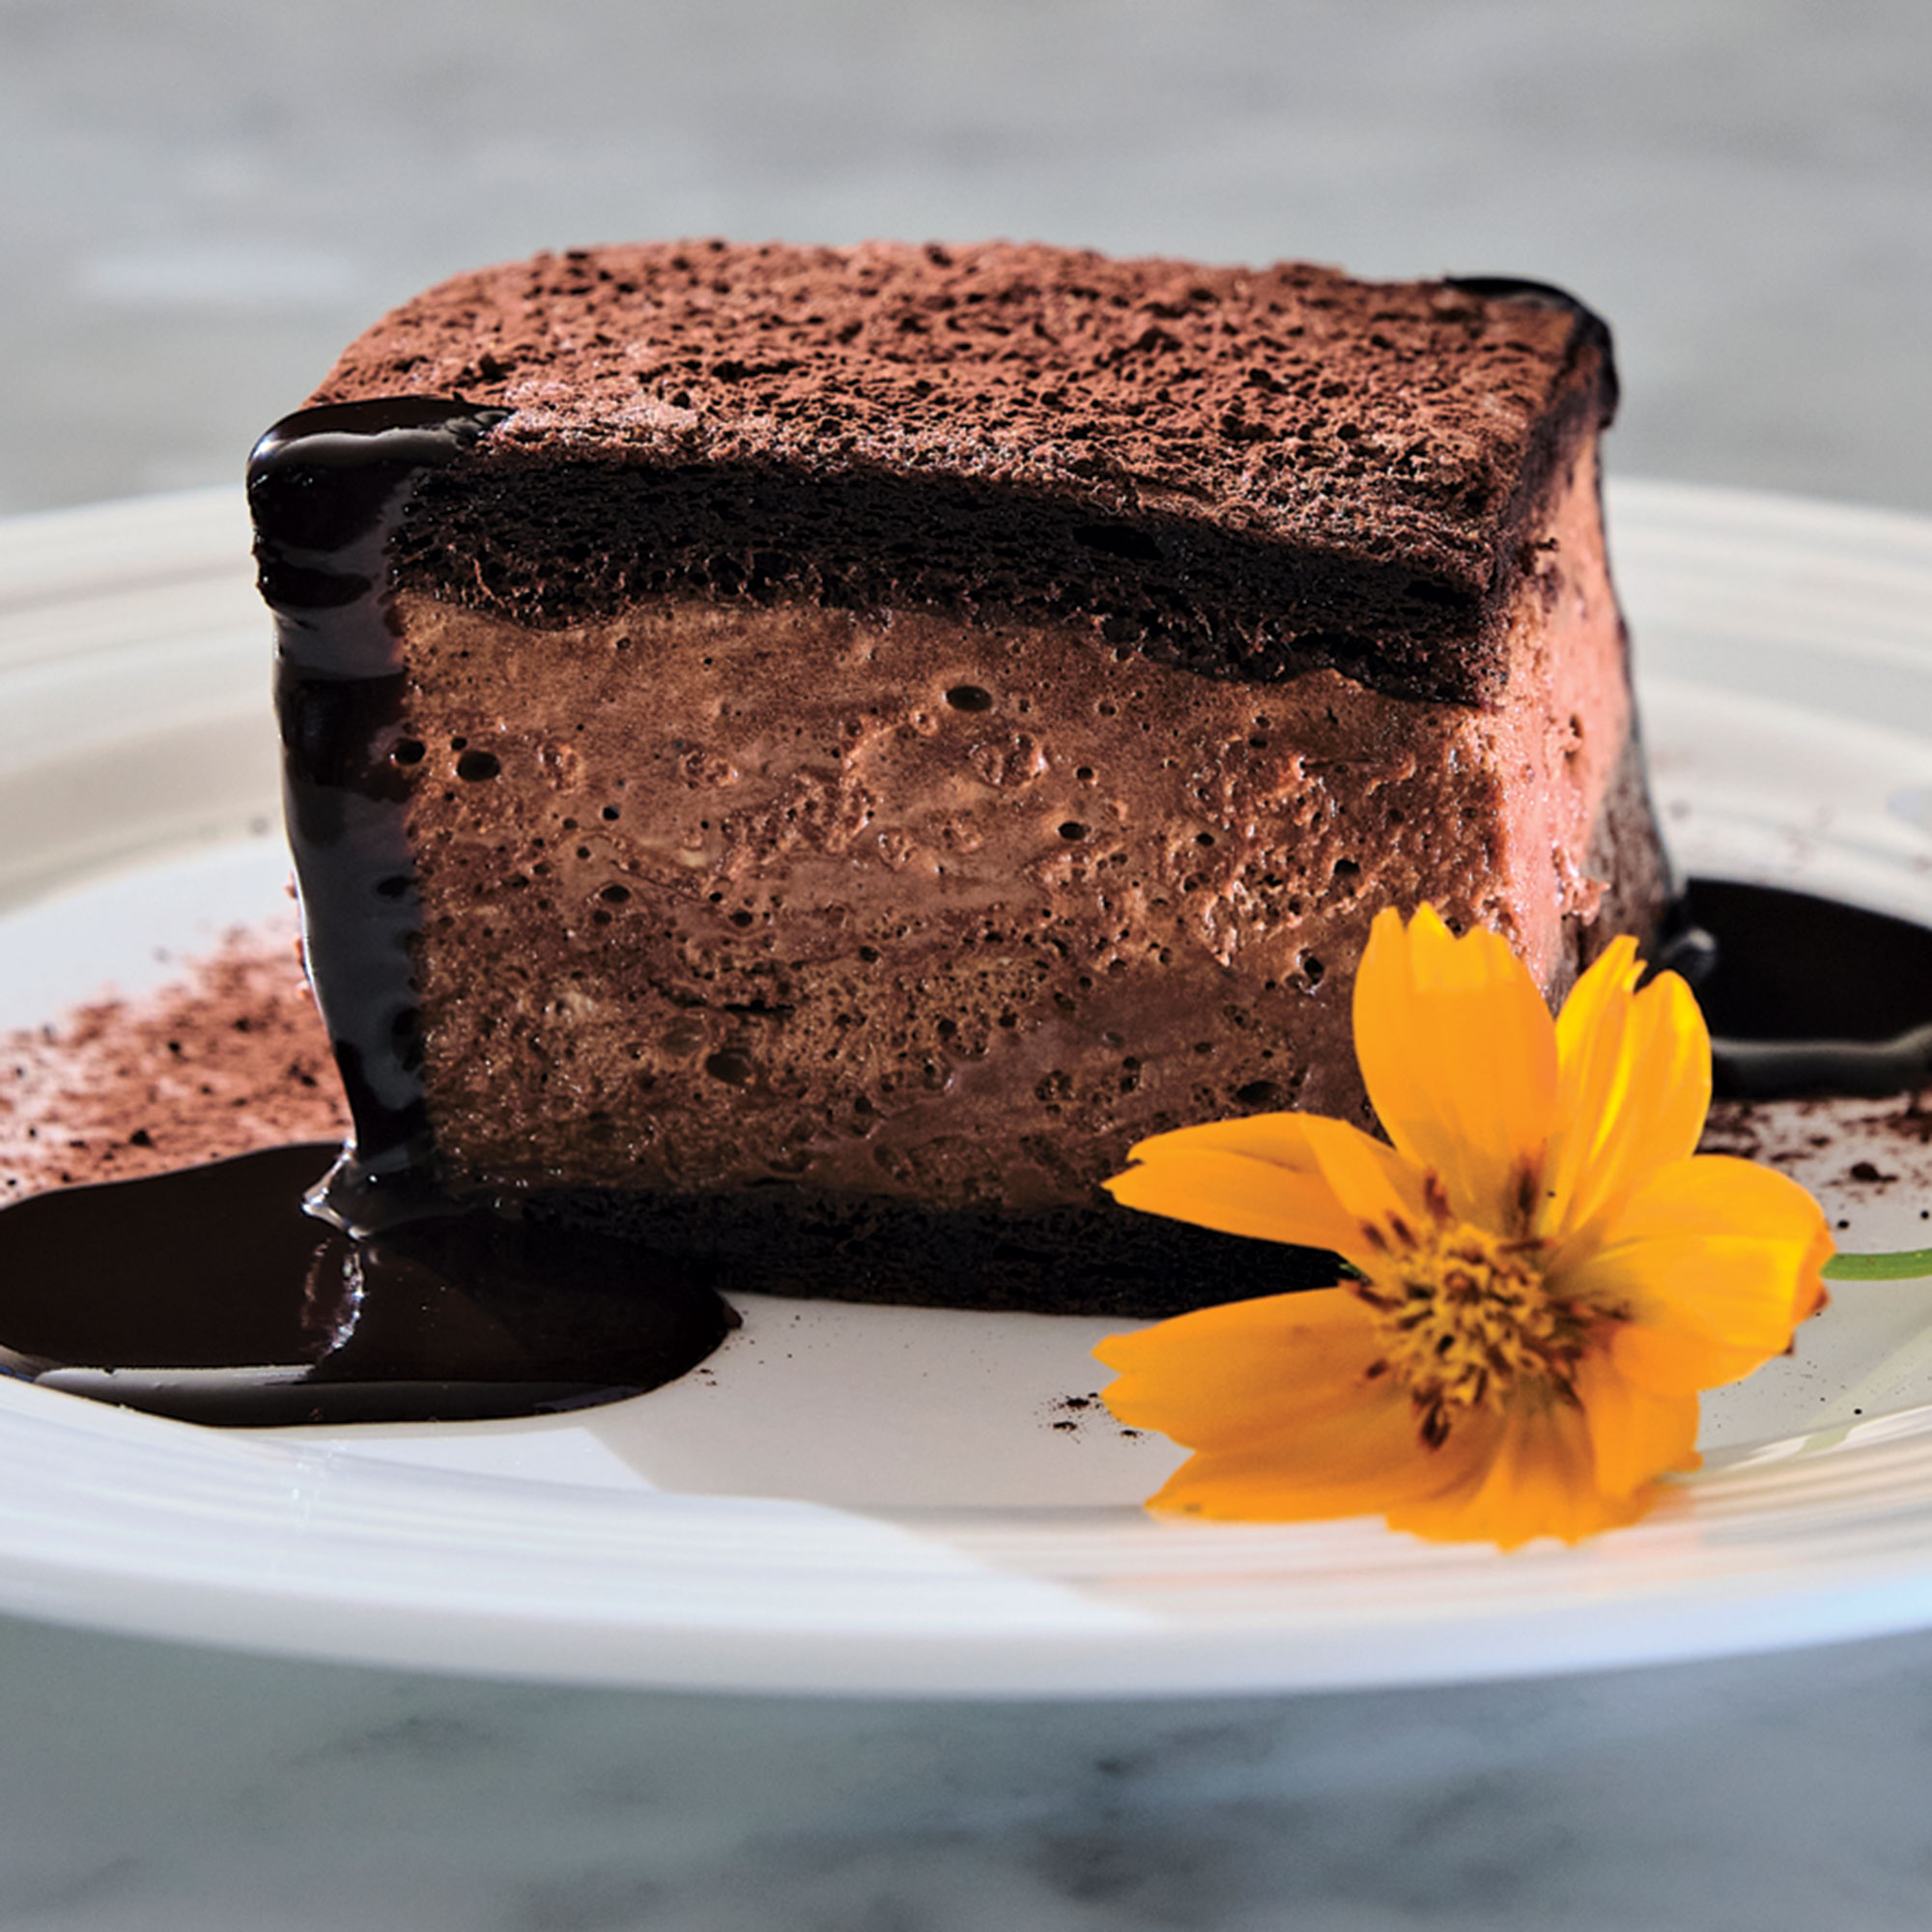 Maida's chocolate cake from FnB; Photography by Kyle Ledeboer